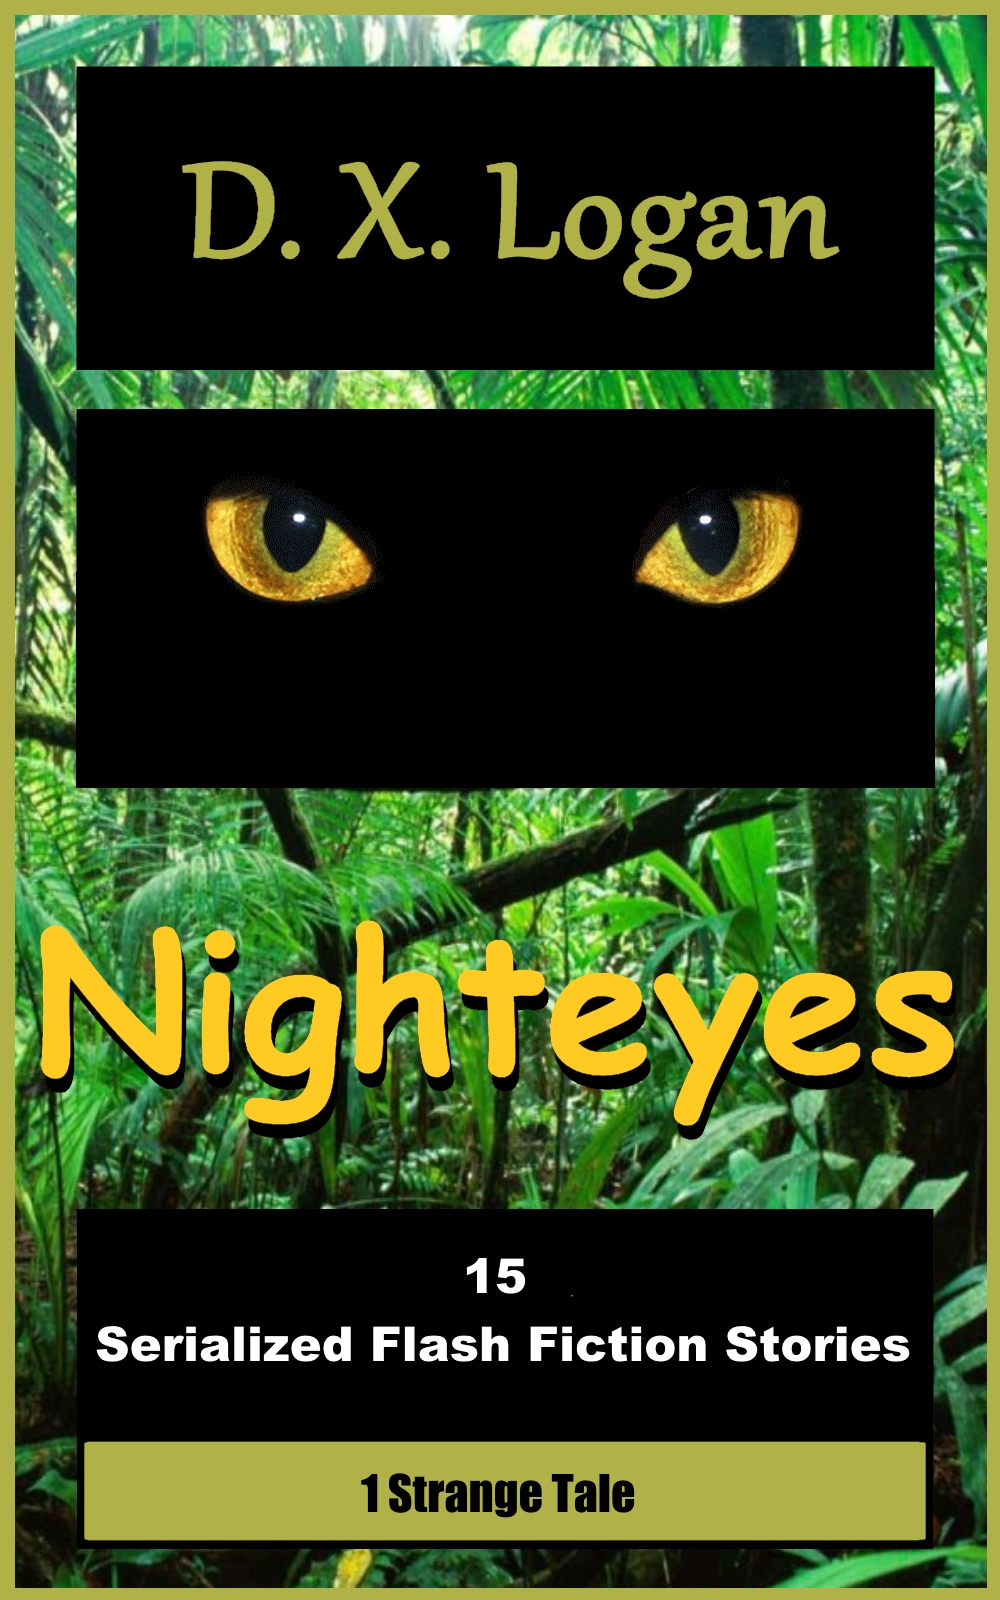 Nighteyes